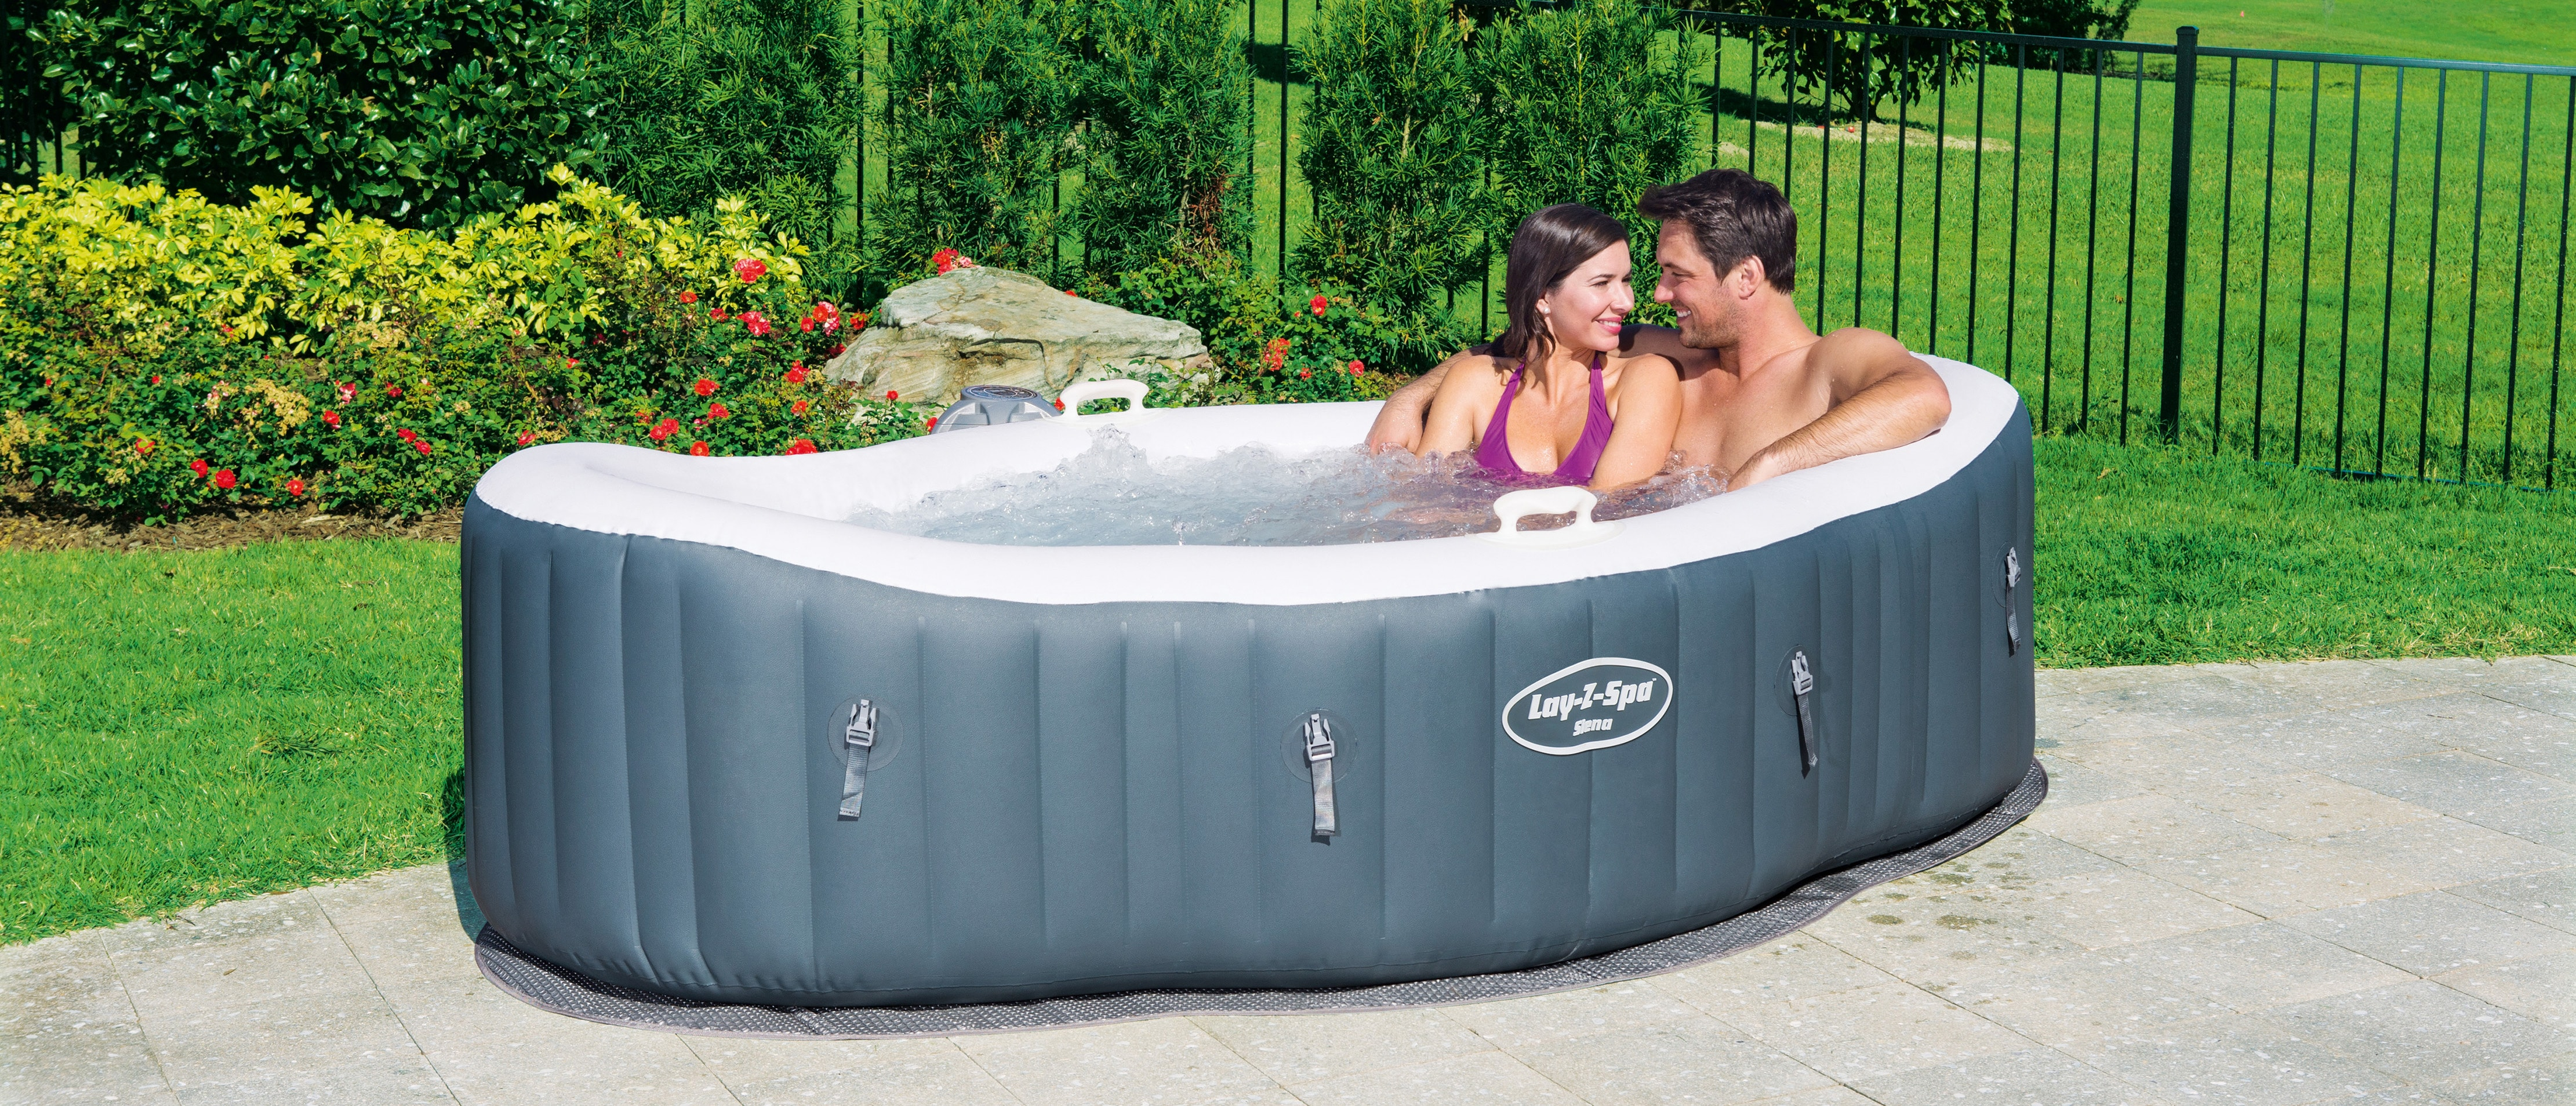 Best 2-Person Hot Tubs